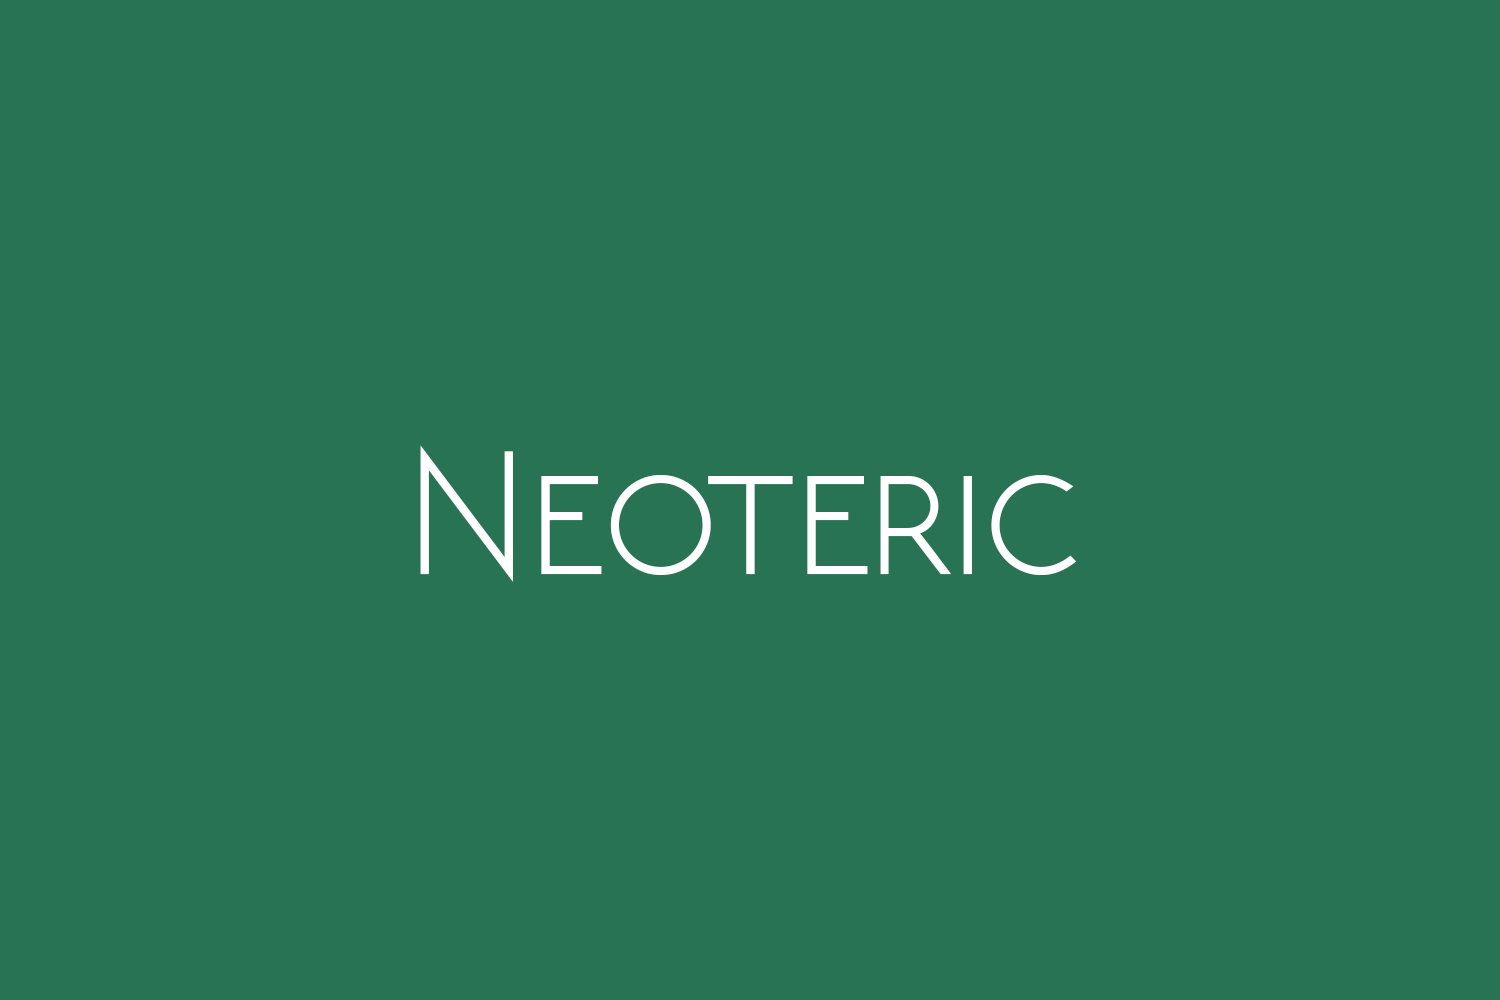 Neoteric Free Font